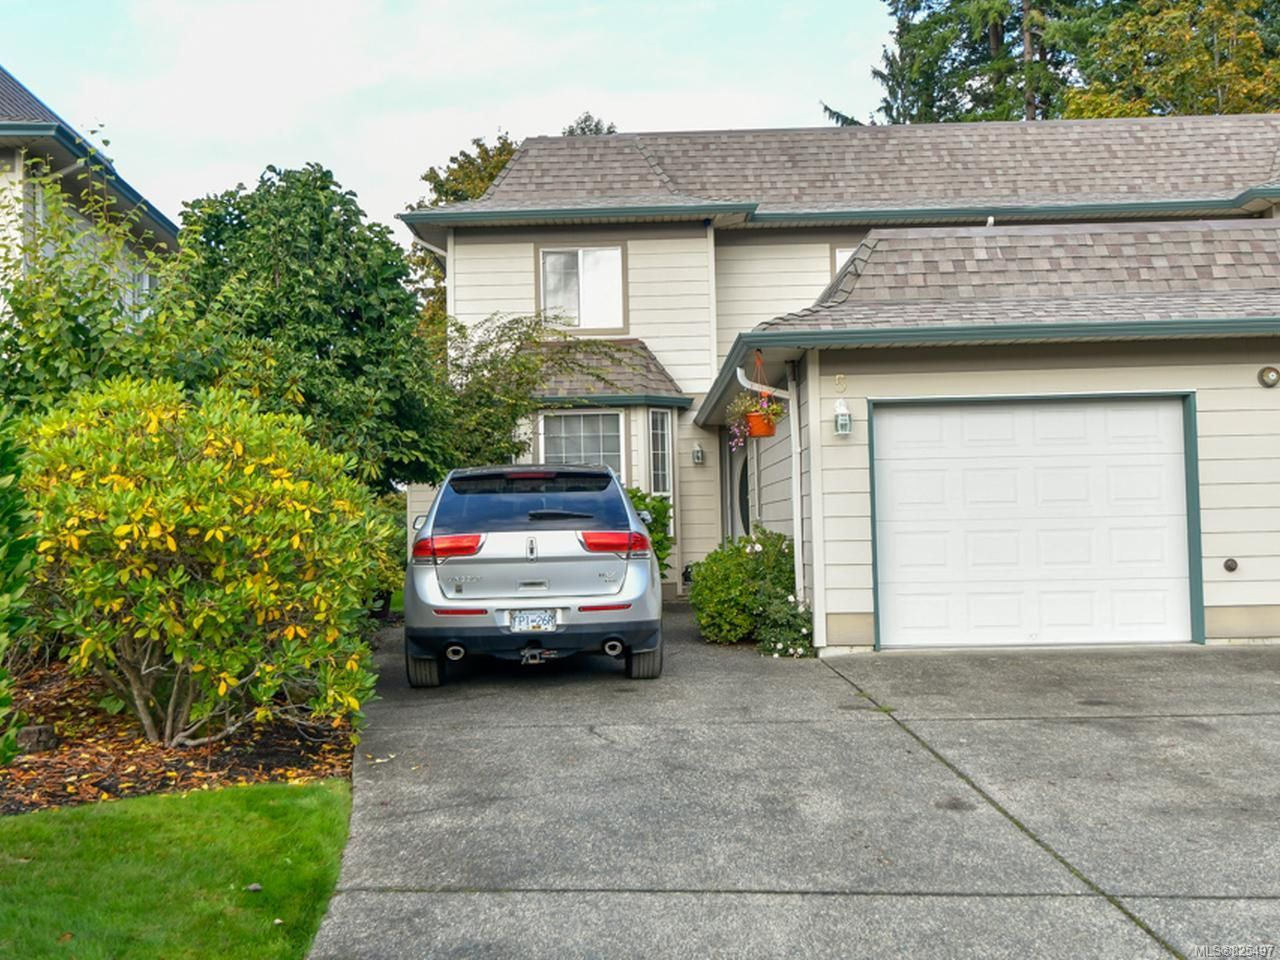 Main Photo: 5 391 ERICKSON ROAD in CAMPBELL RIVER: CR Willow Point Row/Townhouse for sale (Campbell River)  : MLS®# 825497